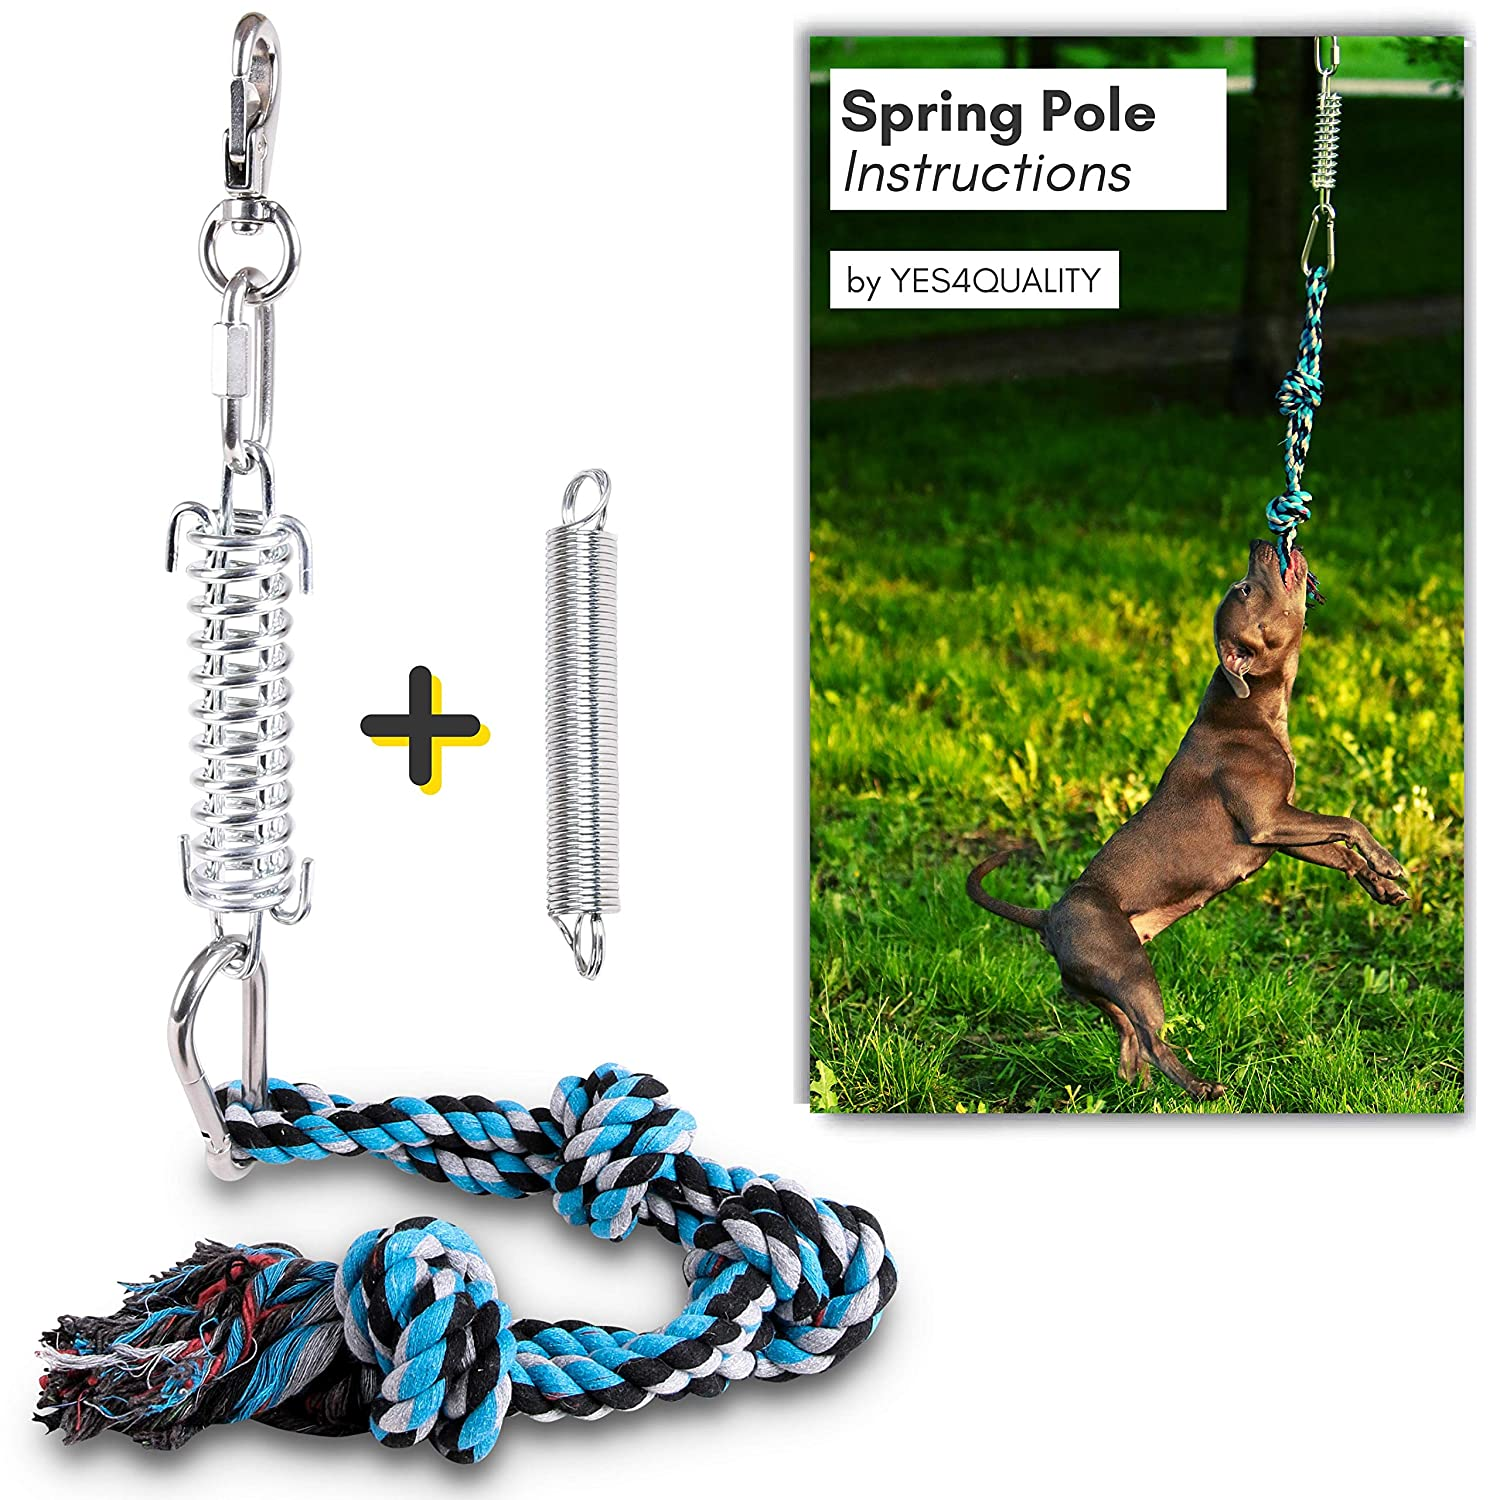 Durable Spring Pole for Pitbull - Strong Dog Rope Toy & 2 Different Capacity Springs Included - Ideal for Medium to Large Dogs & Puppies - Safe Outdoor Exercise, Pull & Tug of War Toy - Muscle Builder